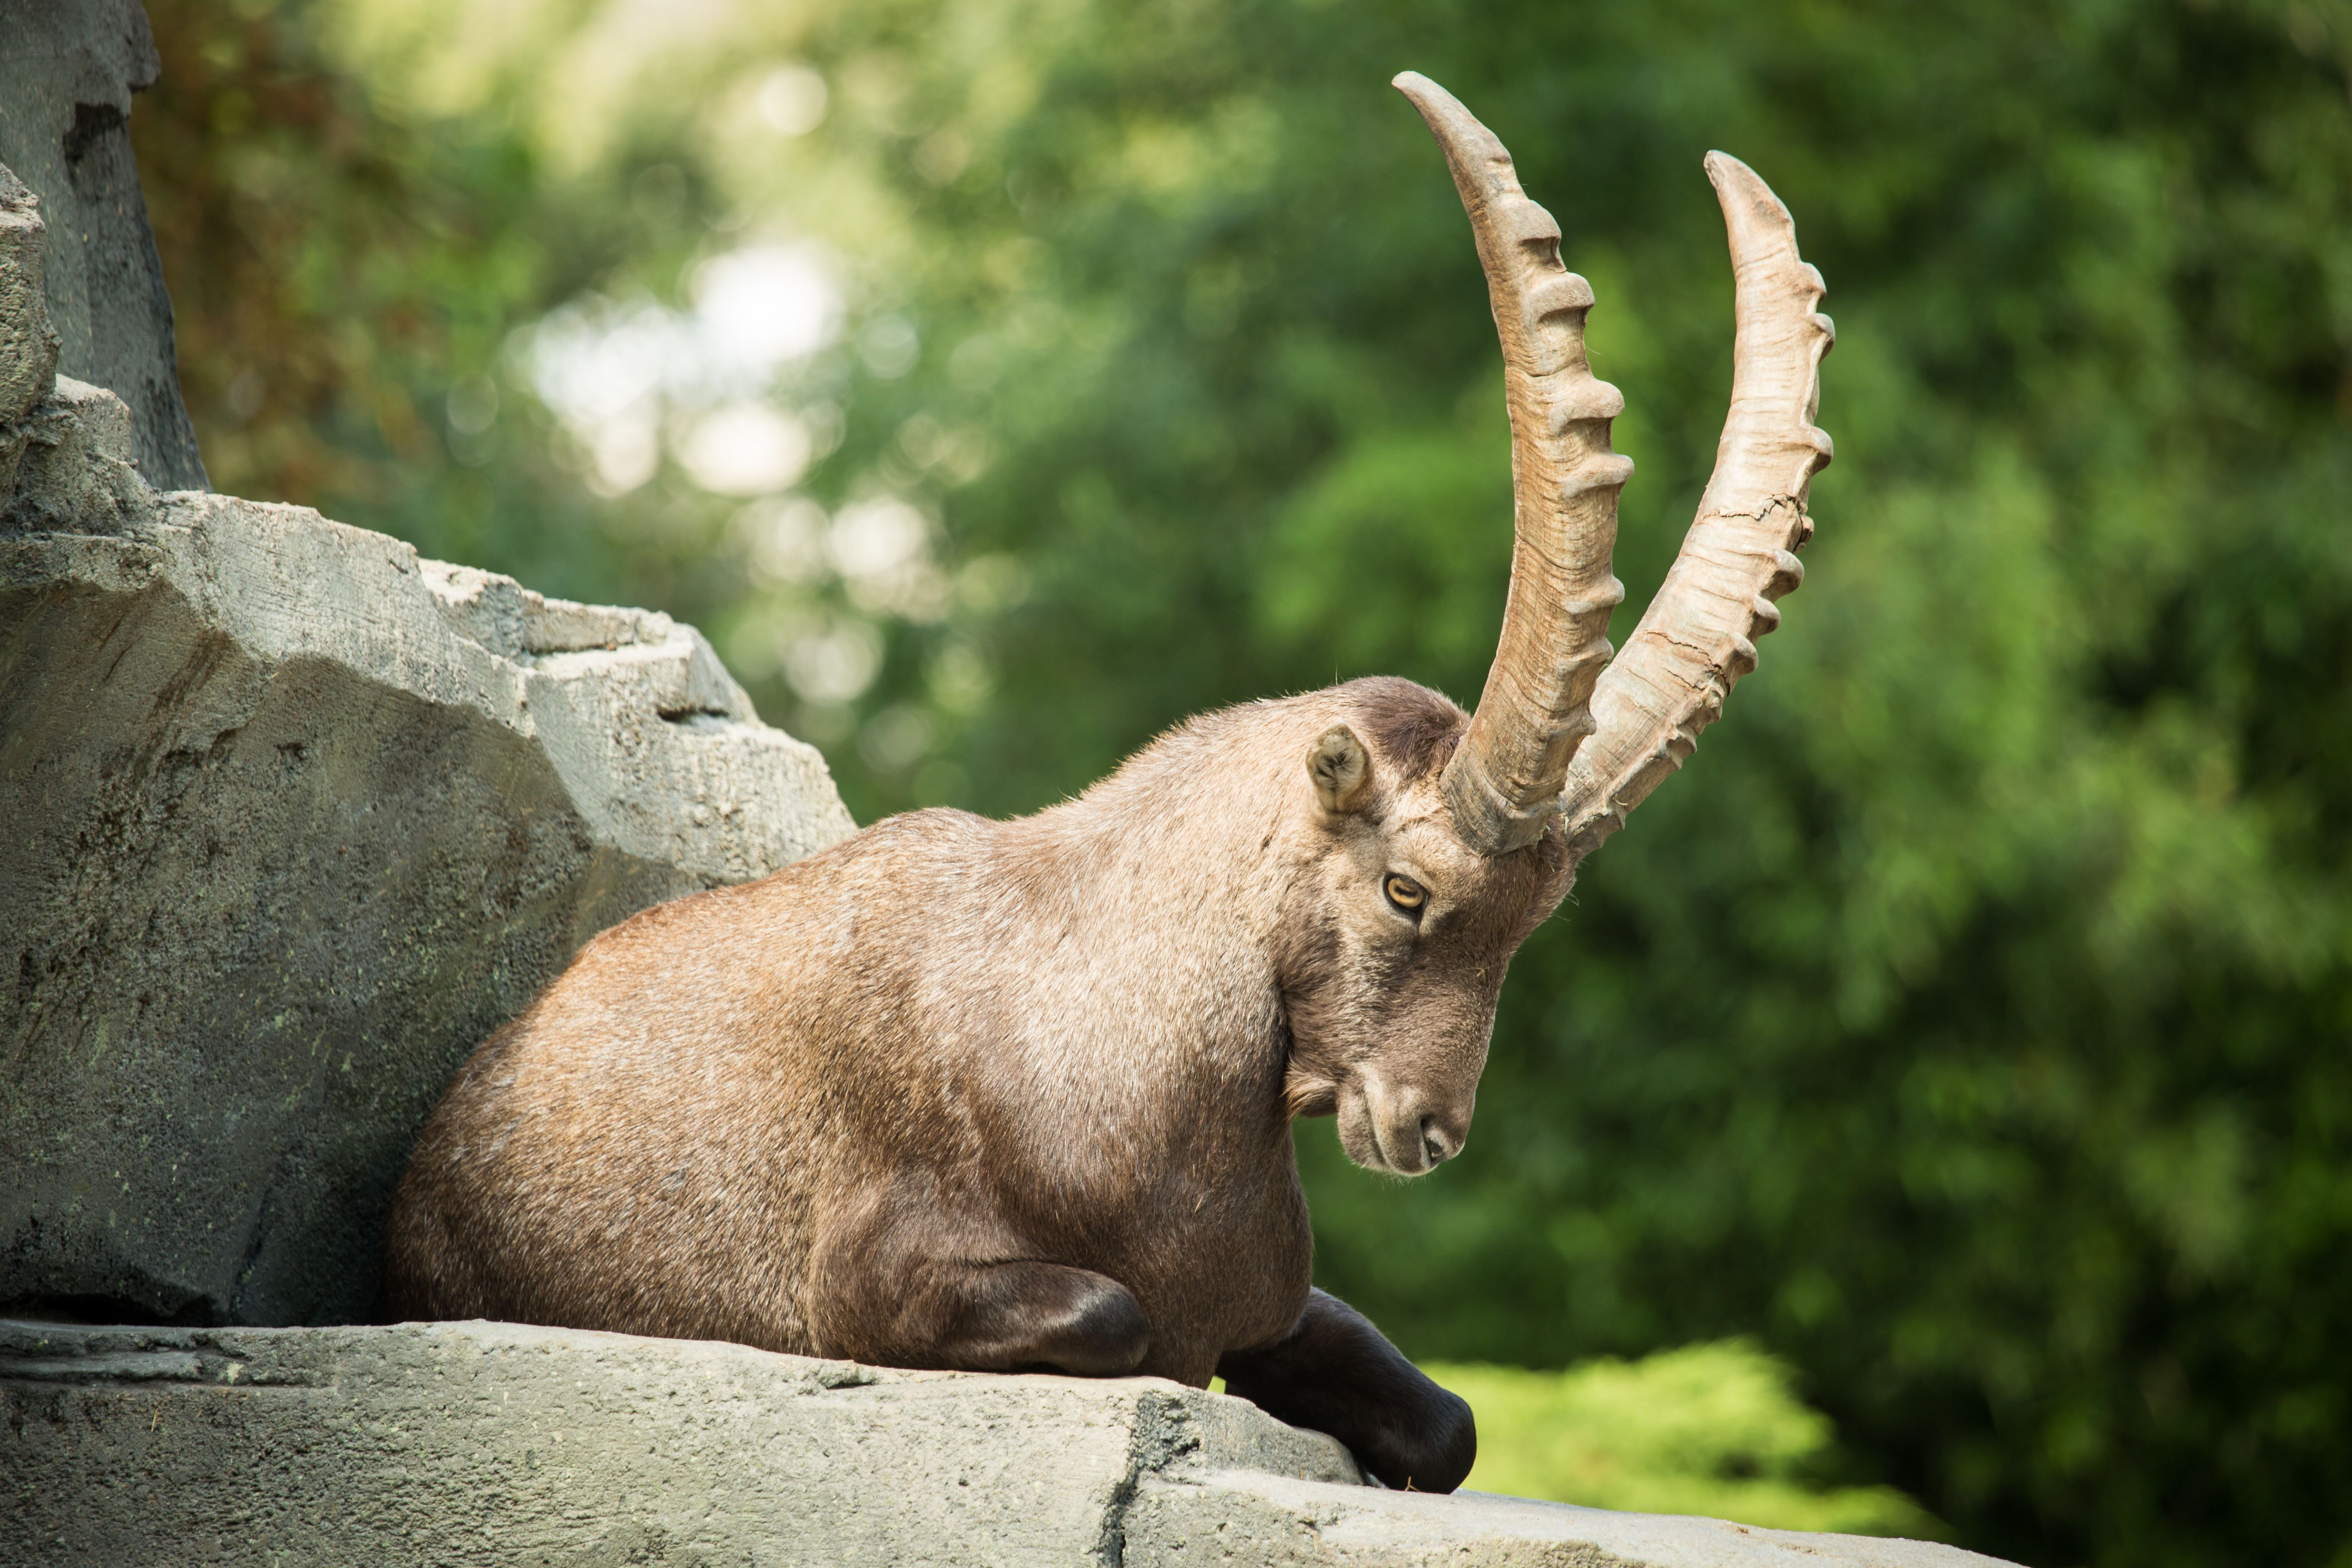 Cute Baby Animal Pictures Wallpapers Alpine Ibex Wallpapers Backgrounds